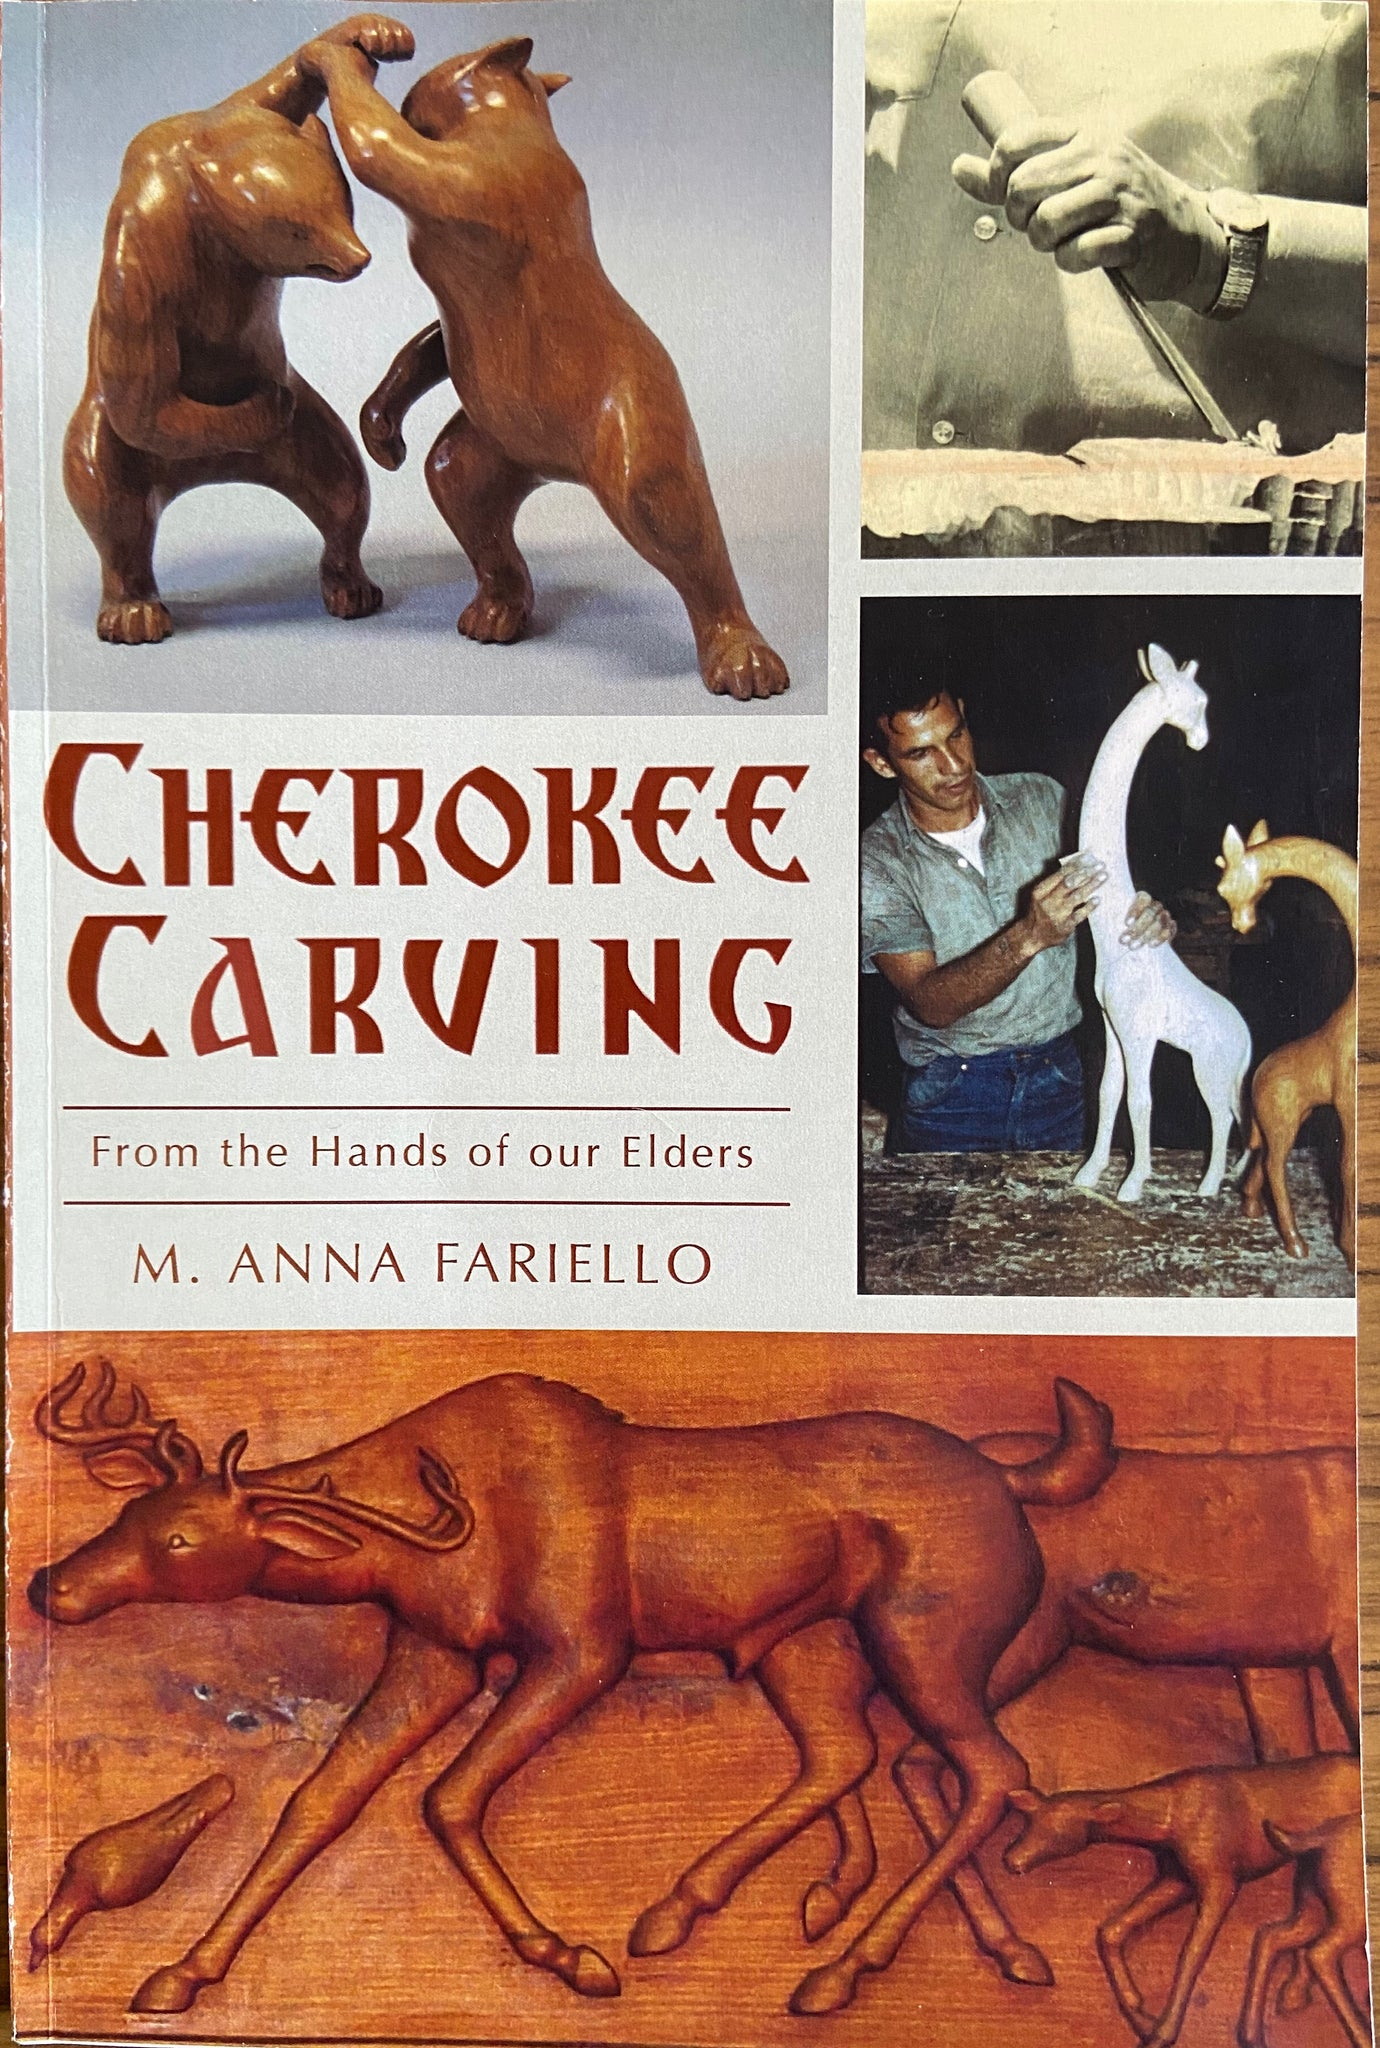 Cherokee Carving - From the Hands of our Elders